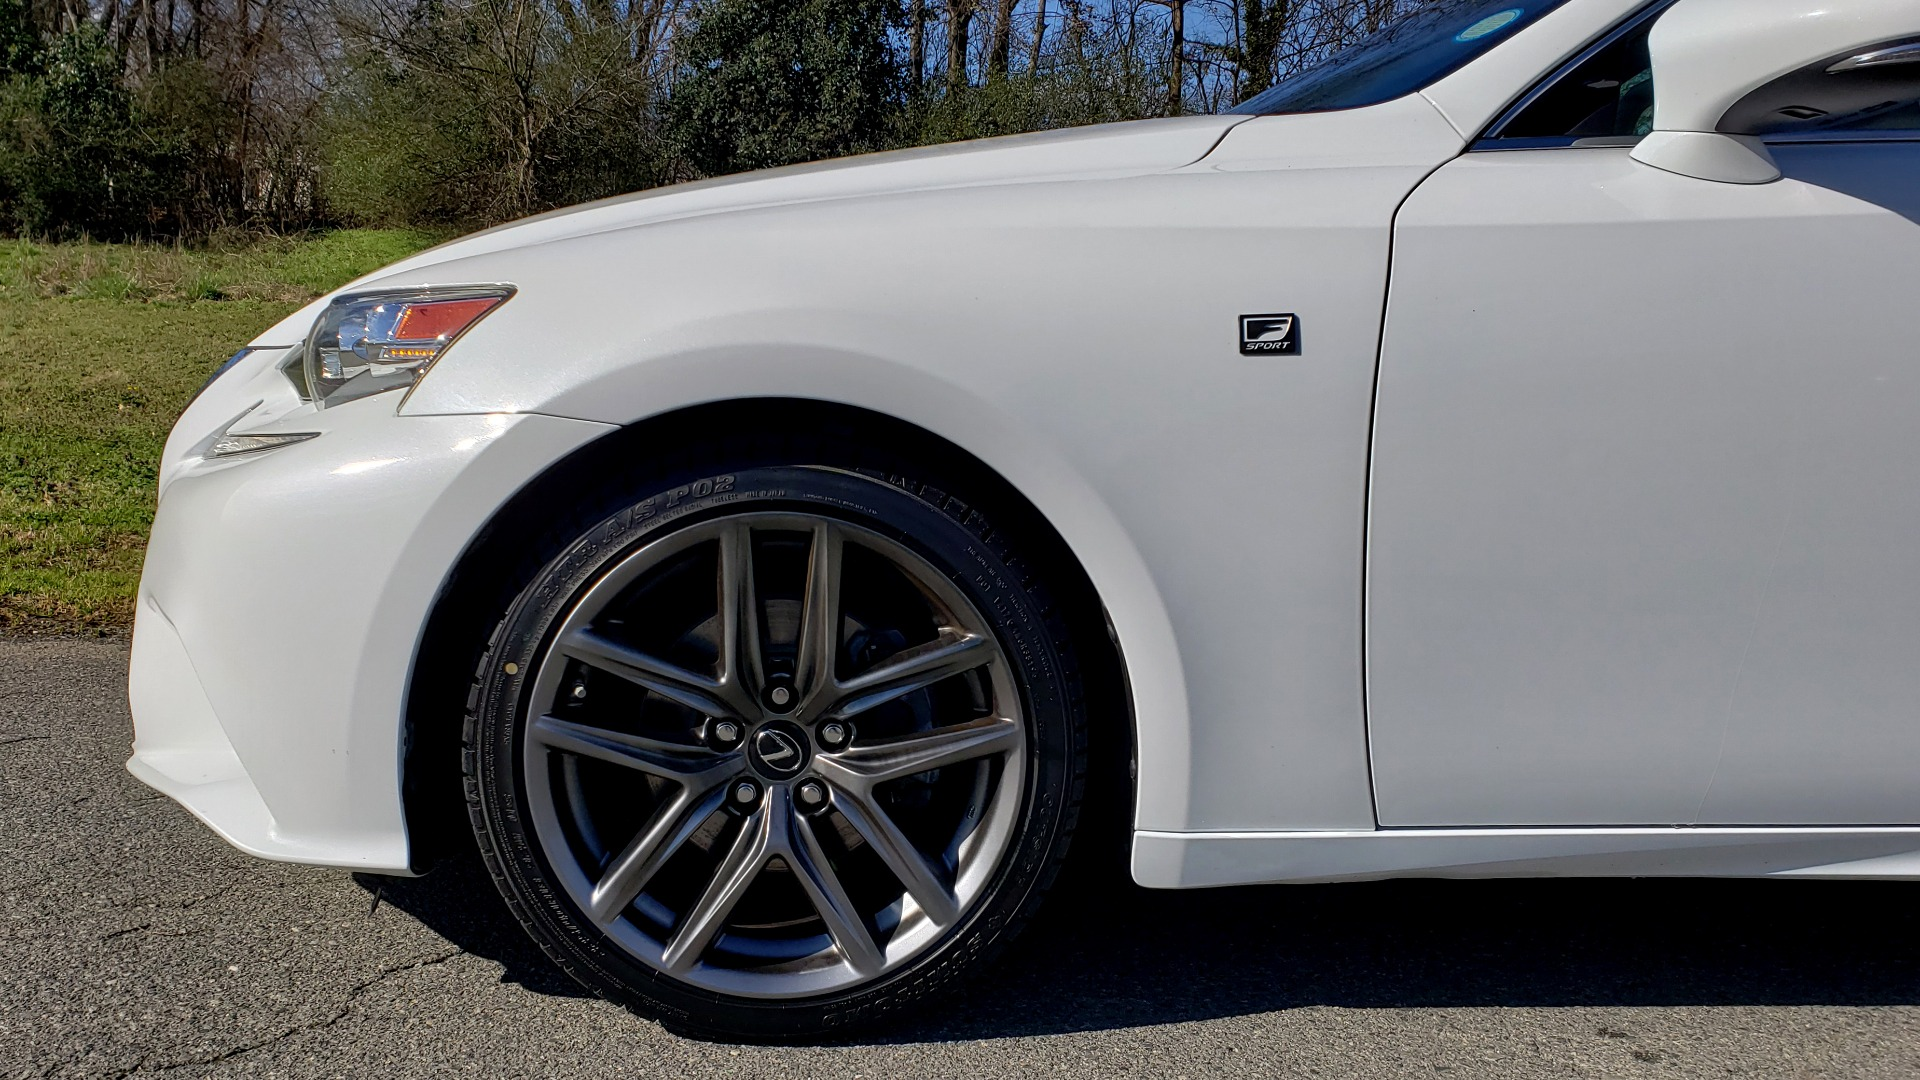 Used 2014 Lexus IS 250 F-SPORT / NAV / SUNROOF / REARVIEW / BSM for sale Sold at Formula Imports in Charlotte NC 28227 68